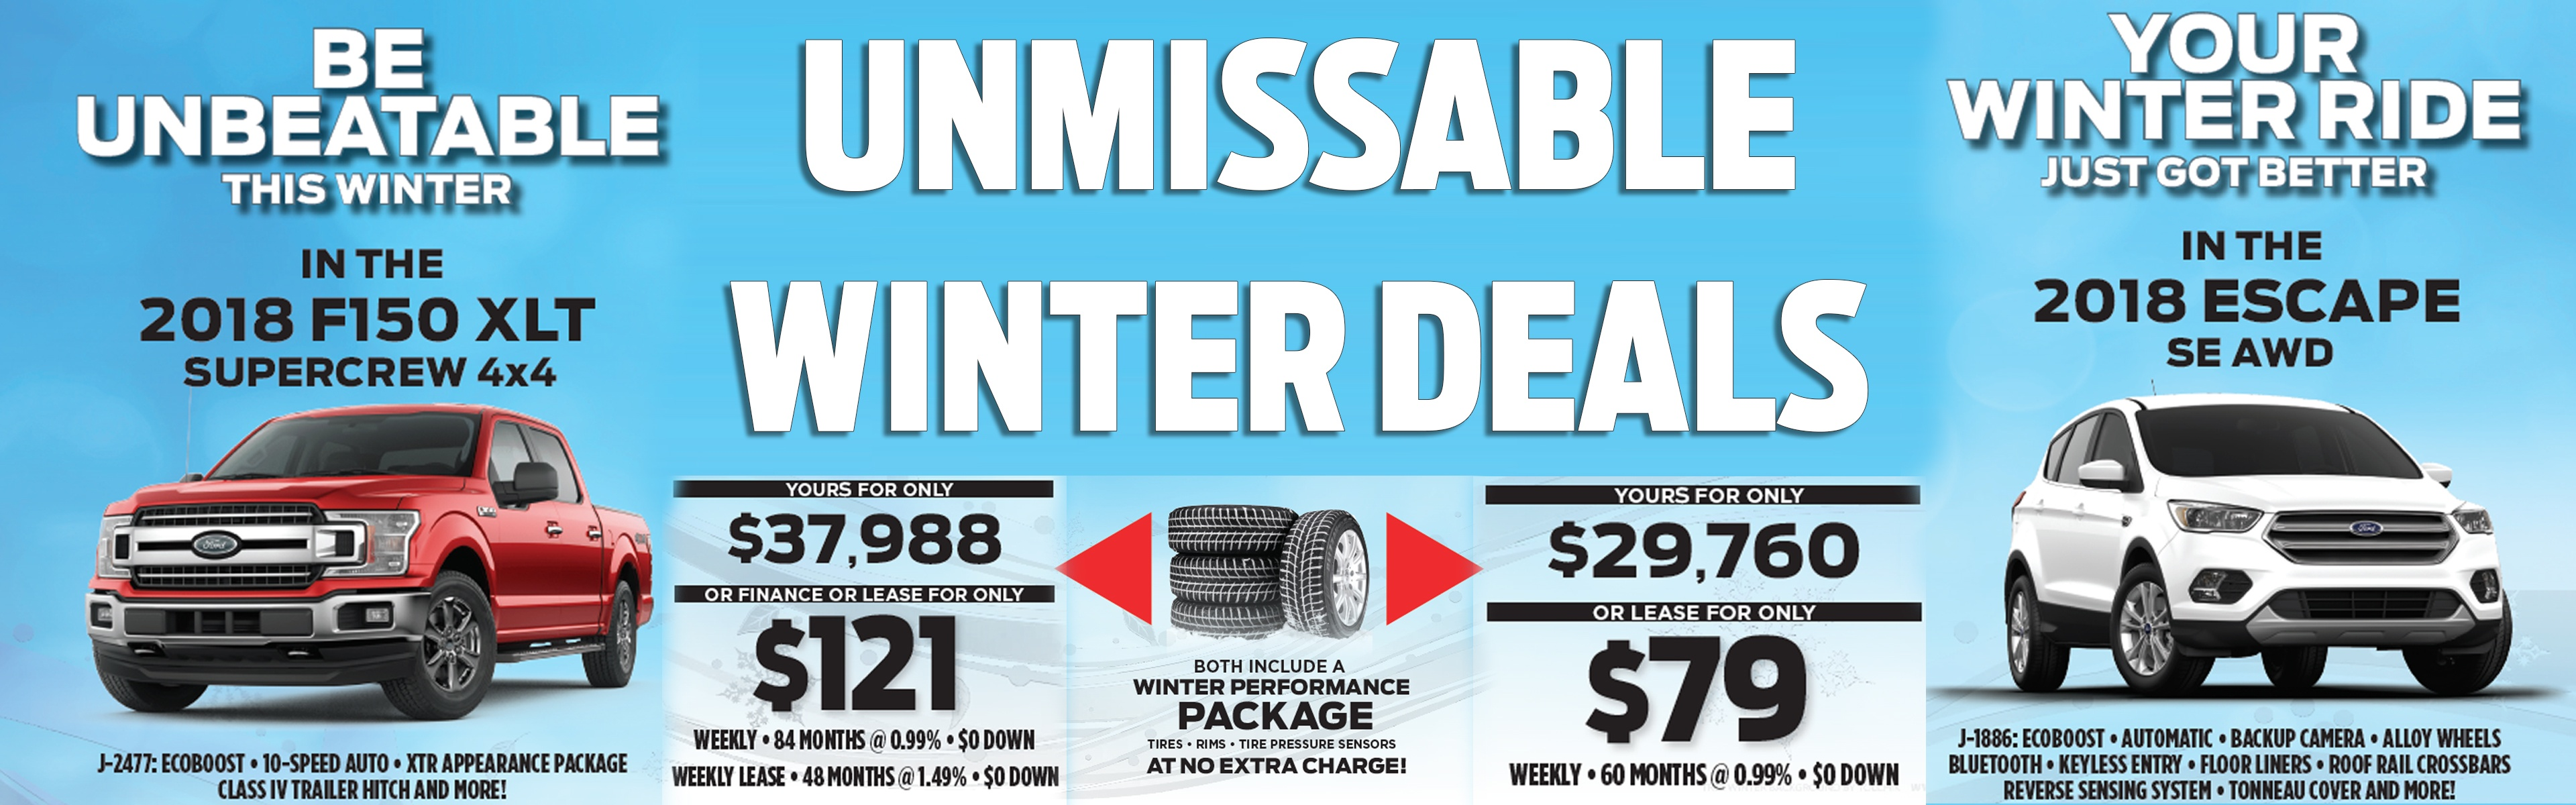 Unmissable Winter Deals at Okotoks Ford